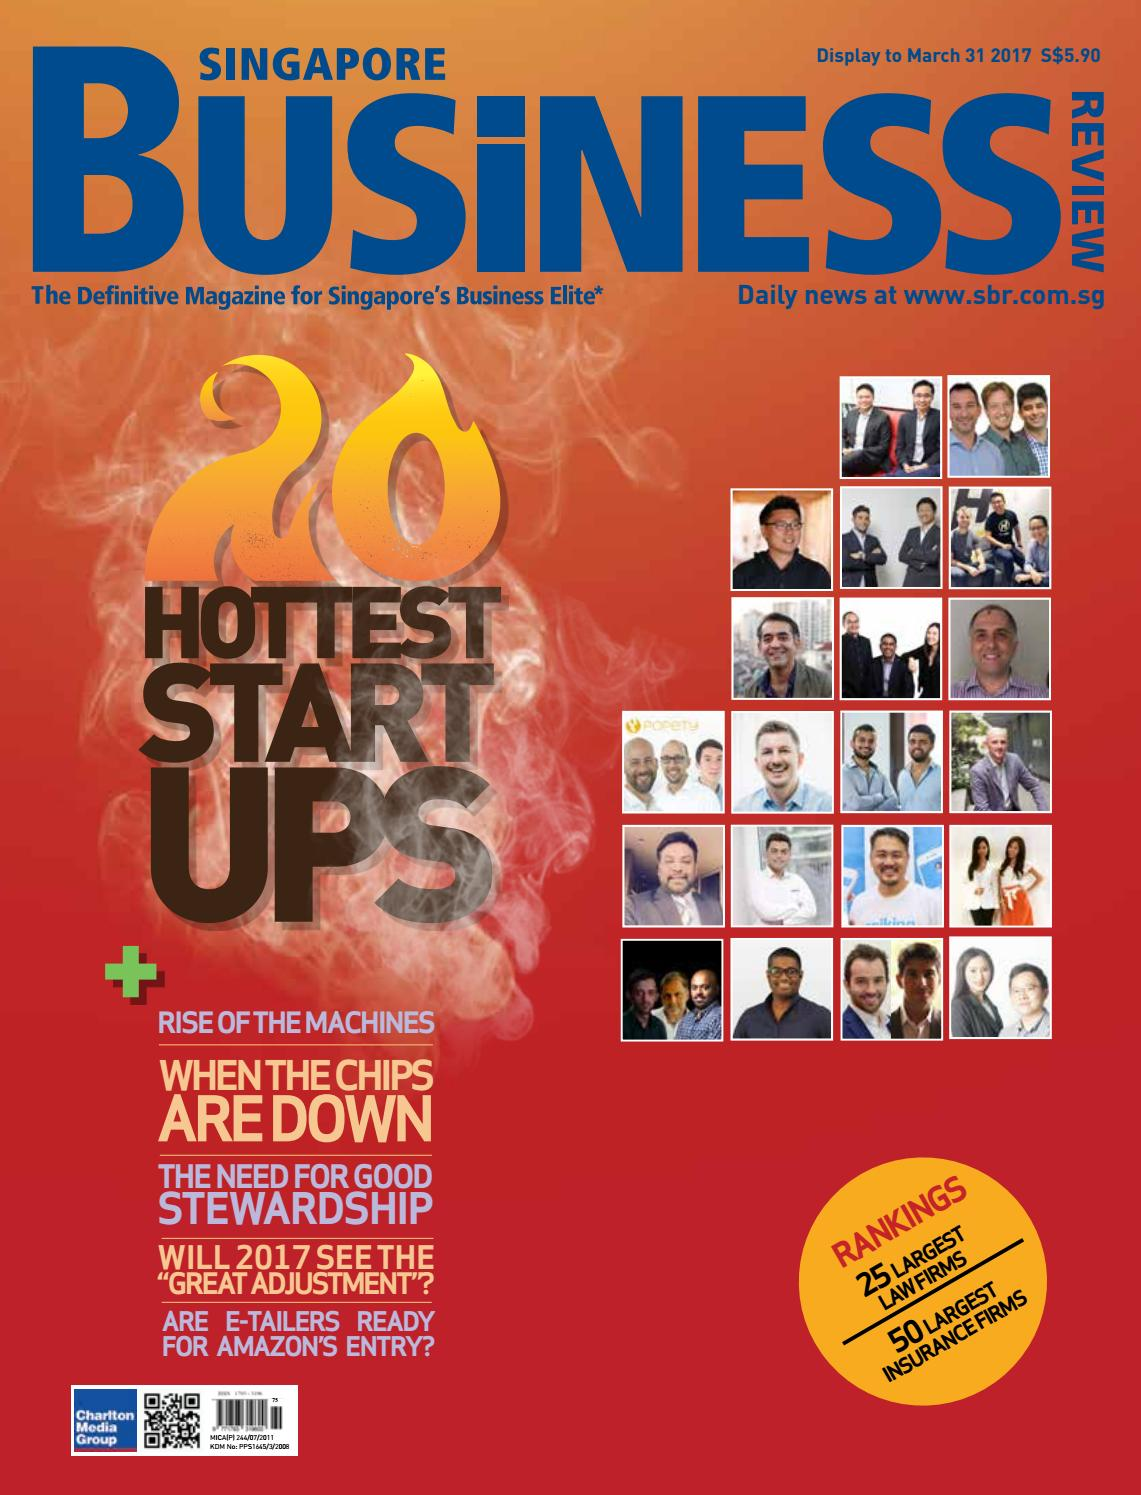 Singapore Business Review (February - March 2017) by